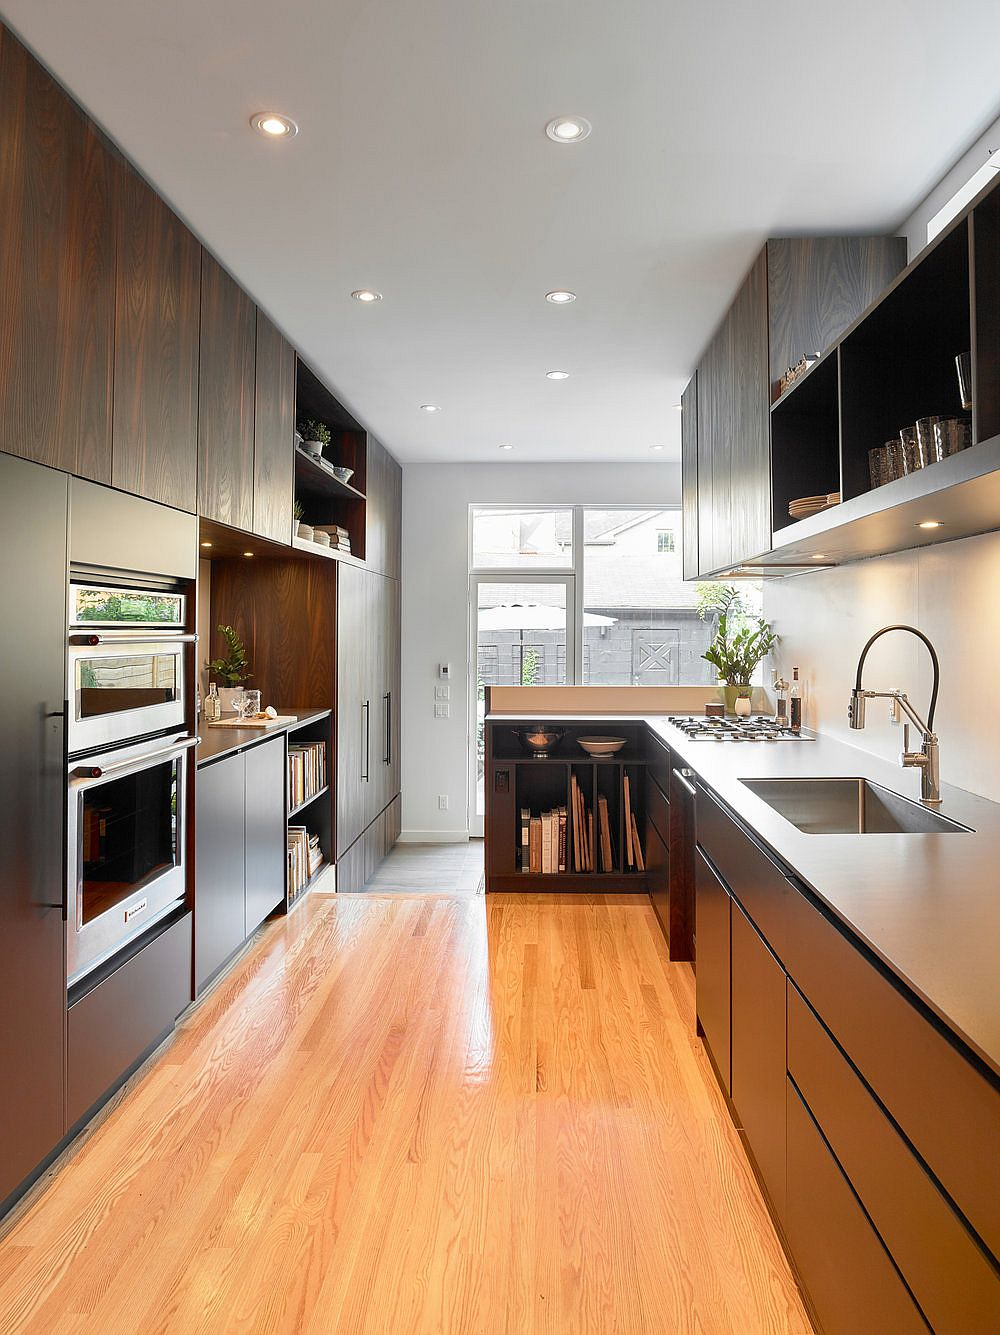 Wood and white kitchen of the Toronto home with a modern traditional style